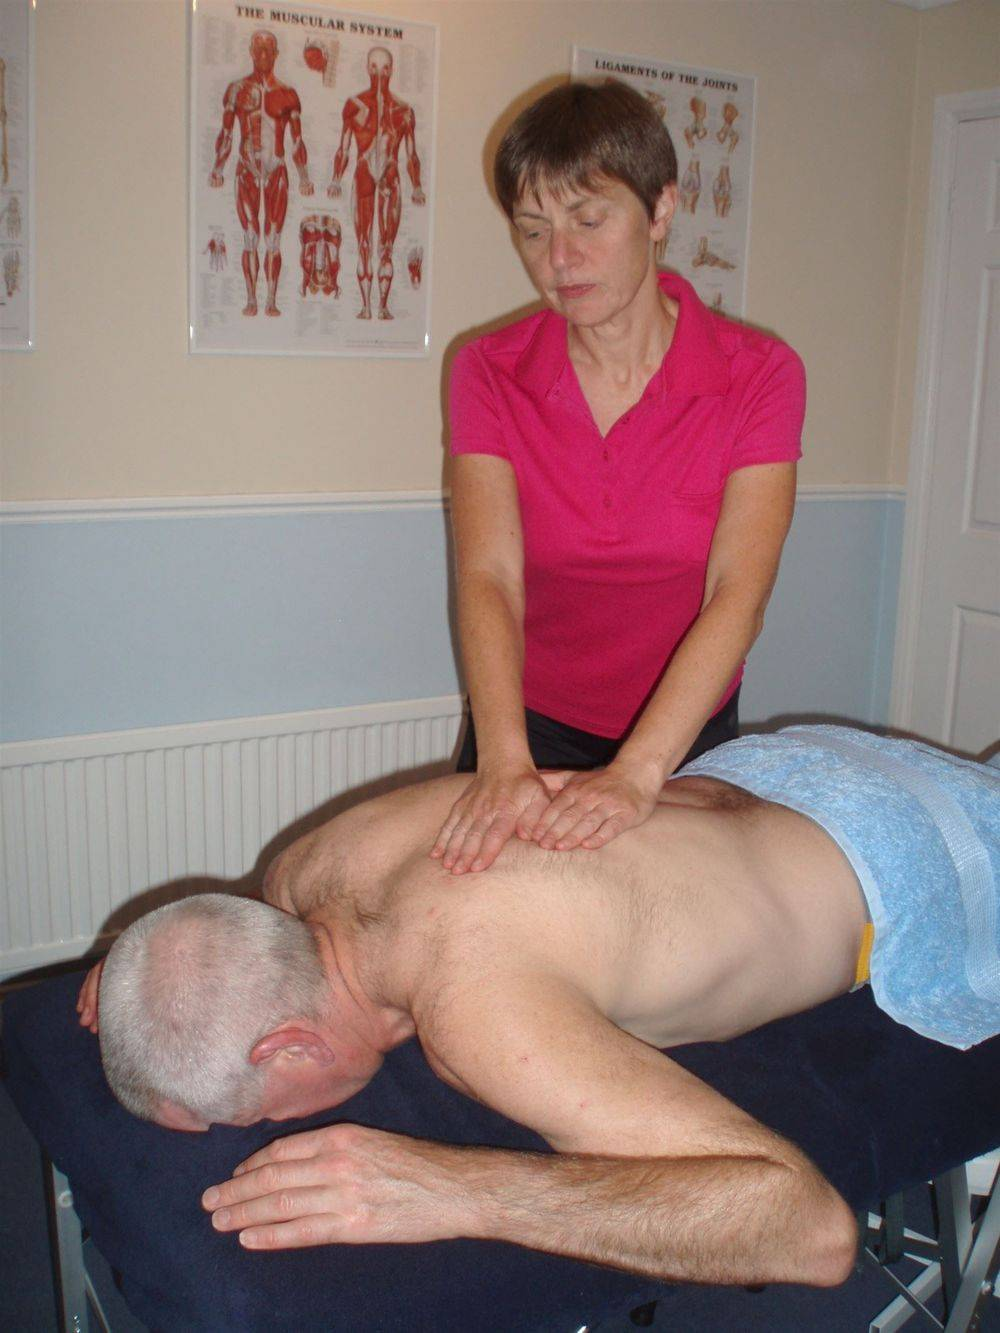 Remedial Massage by Evette Price Sport and Remedial Massage Therapist, Wells-next-the-Sea, Norfolk